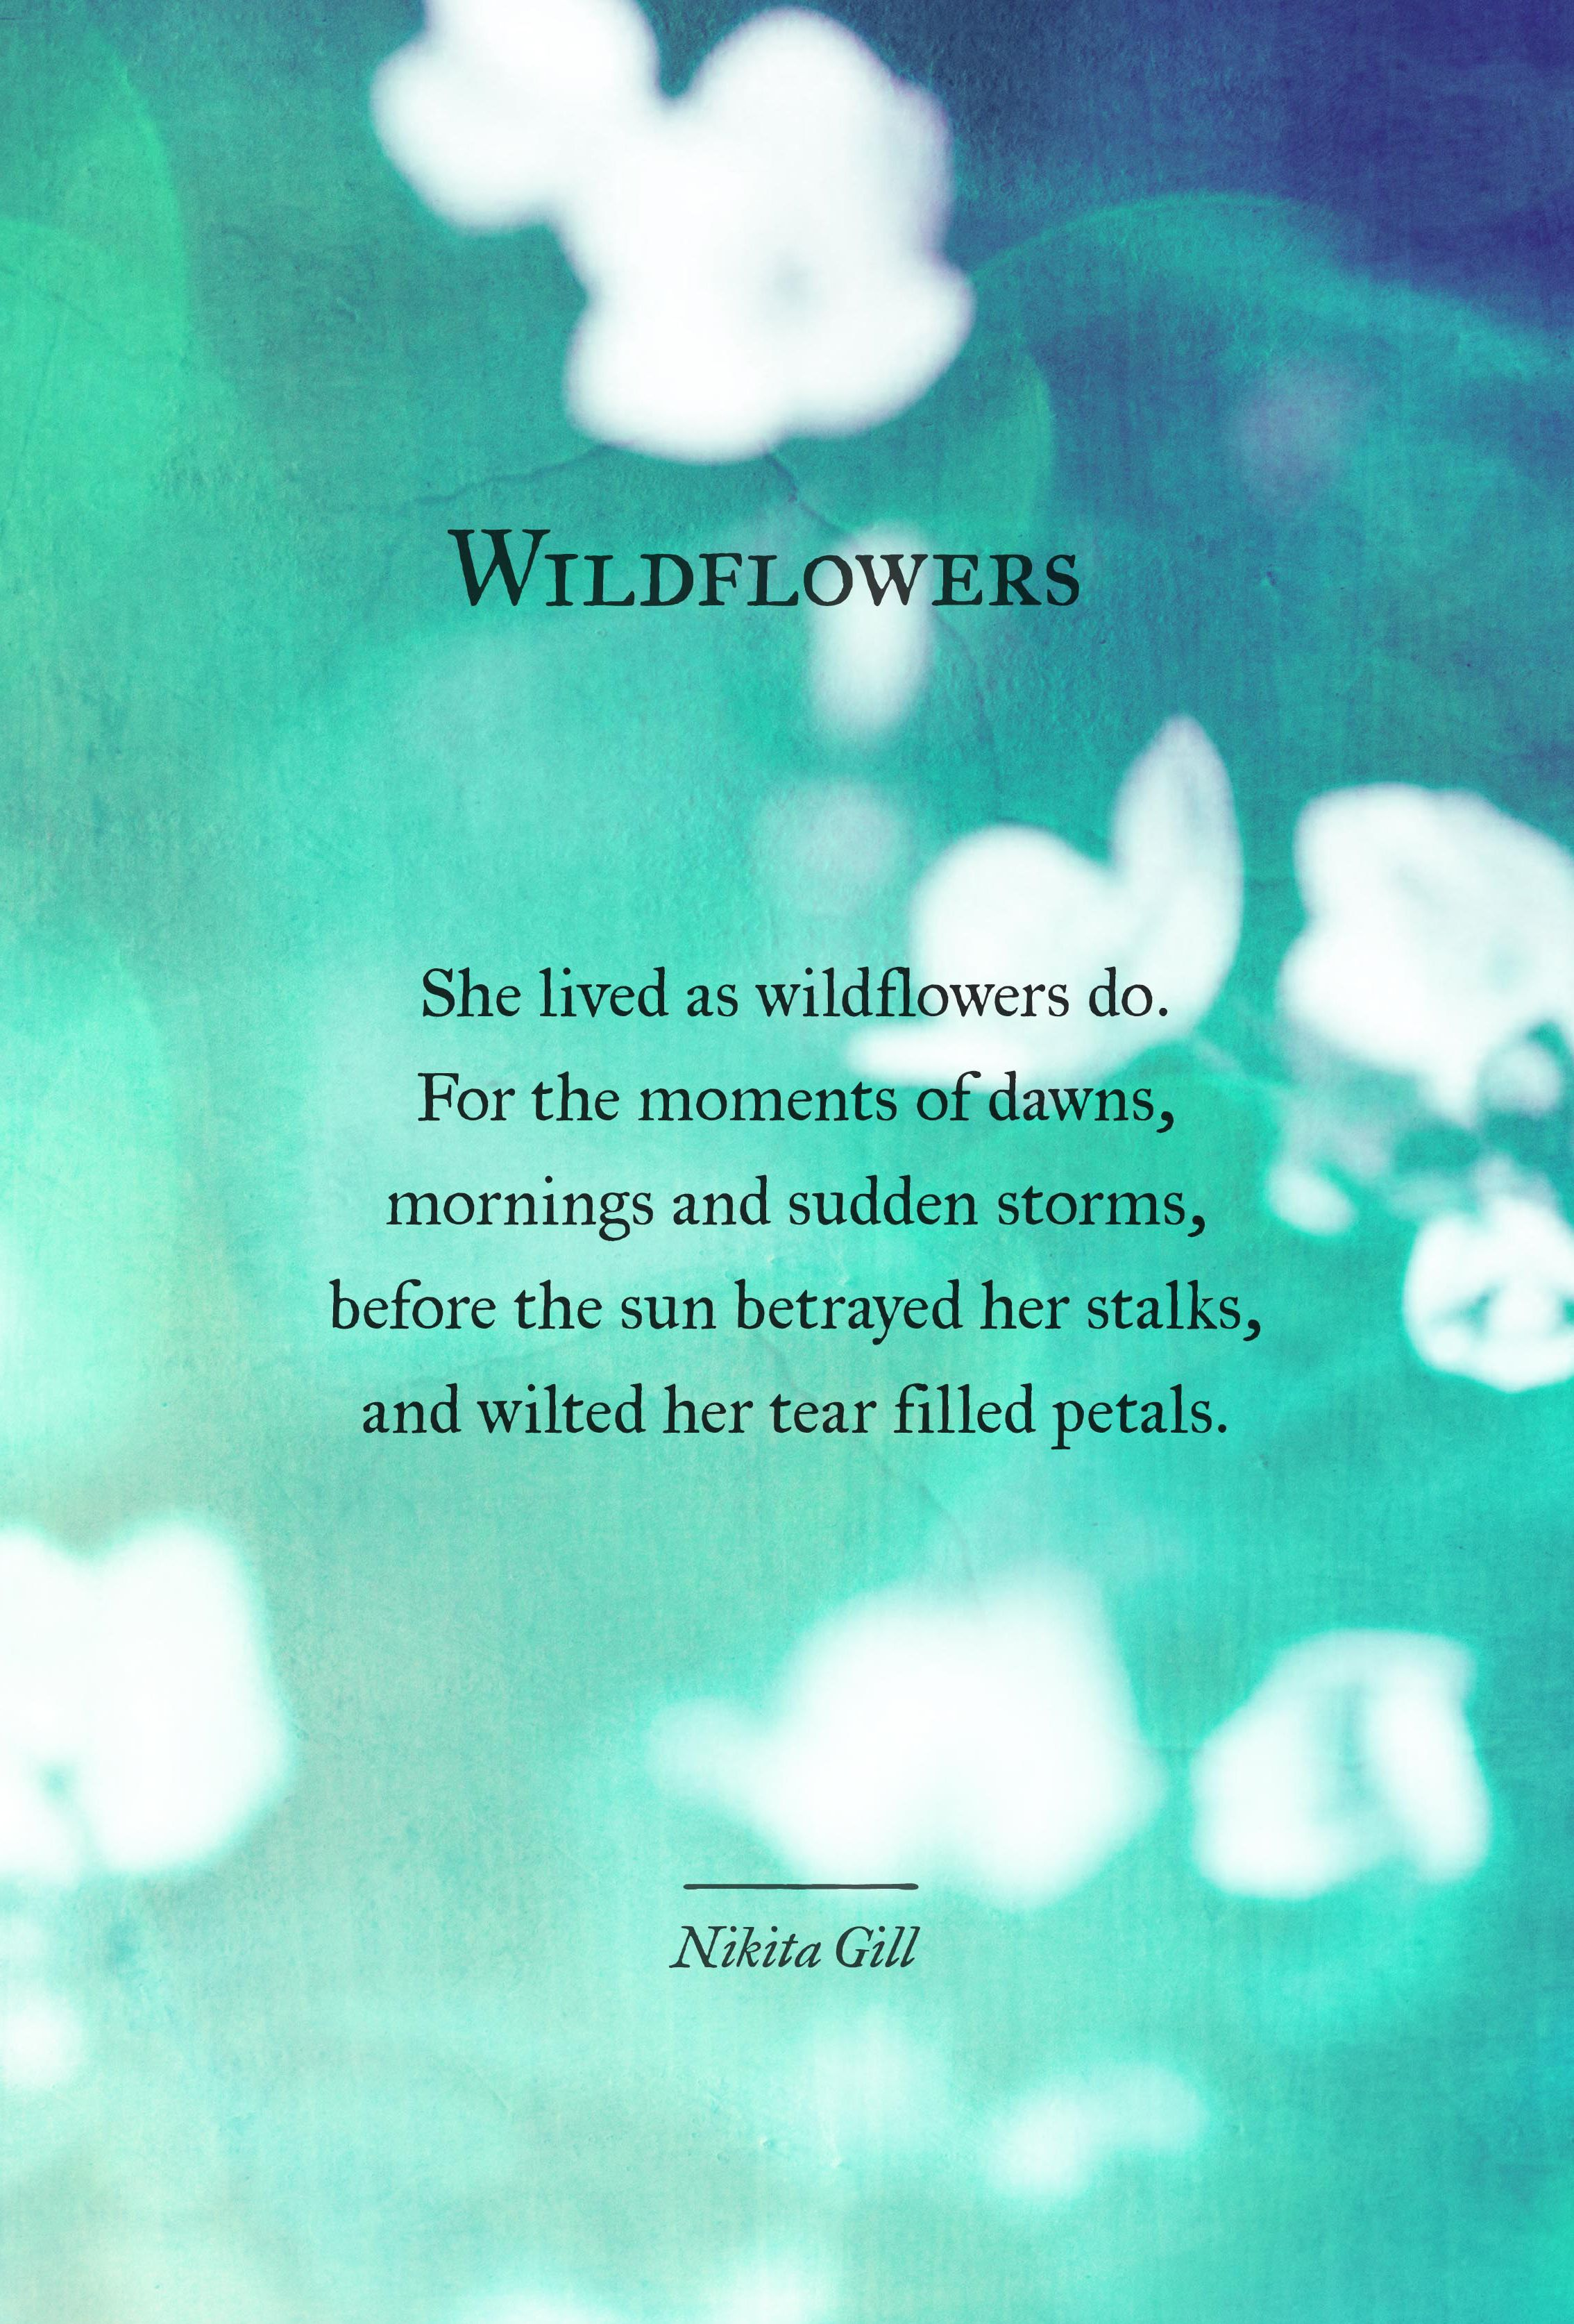 Nikita Gill #poetry | Poetry quotes, Wild flower quotes ...